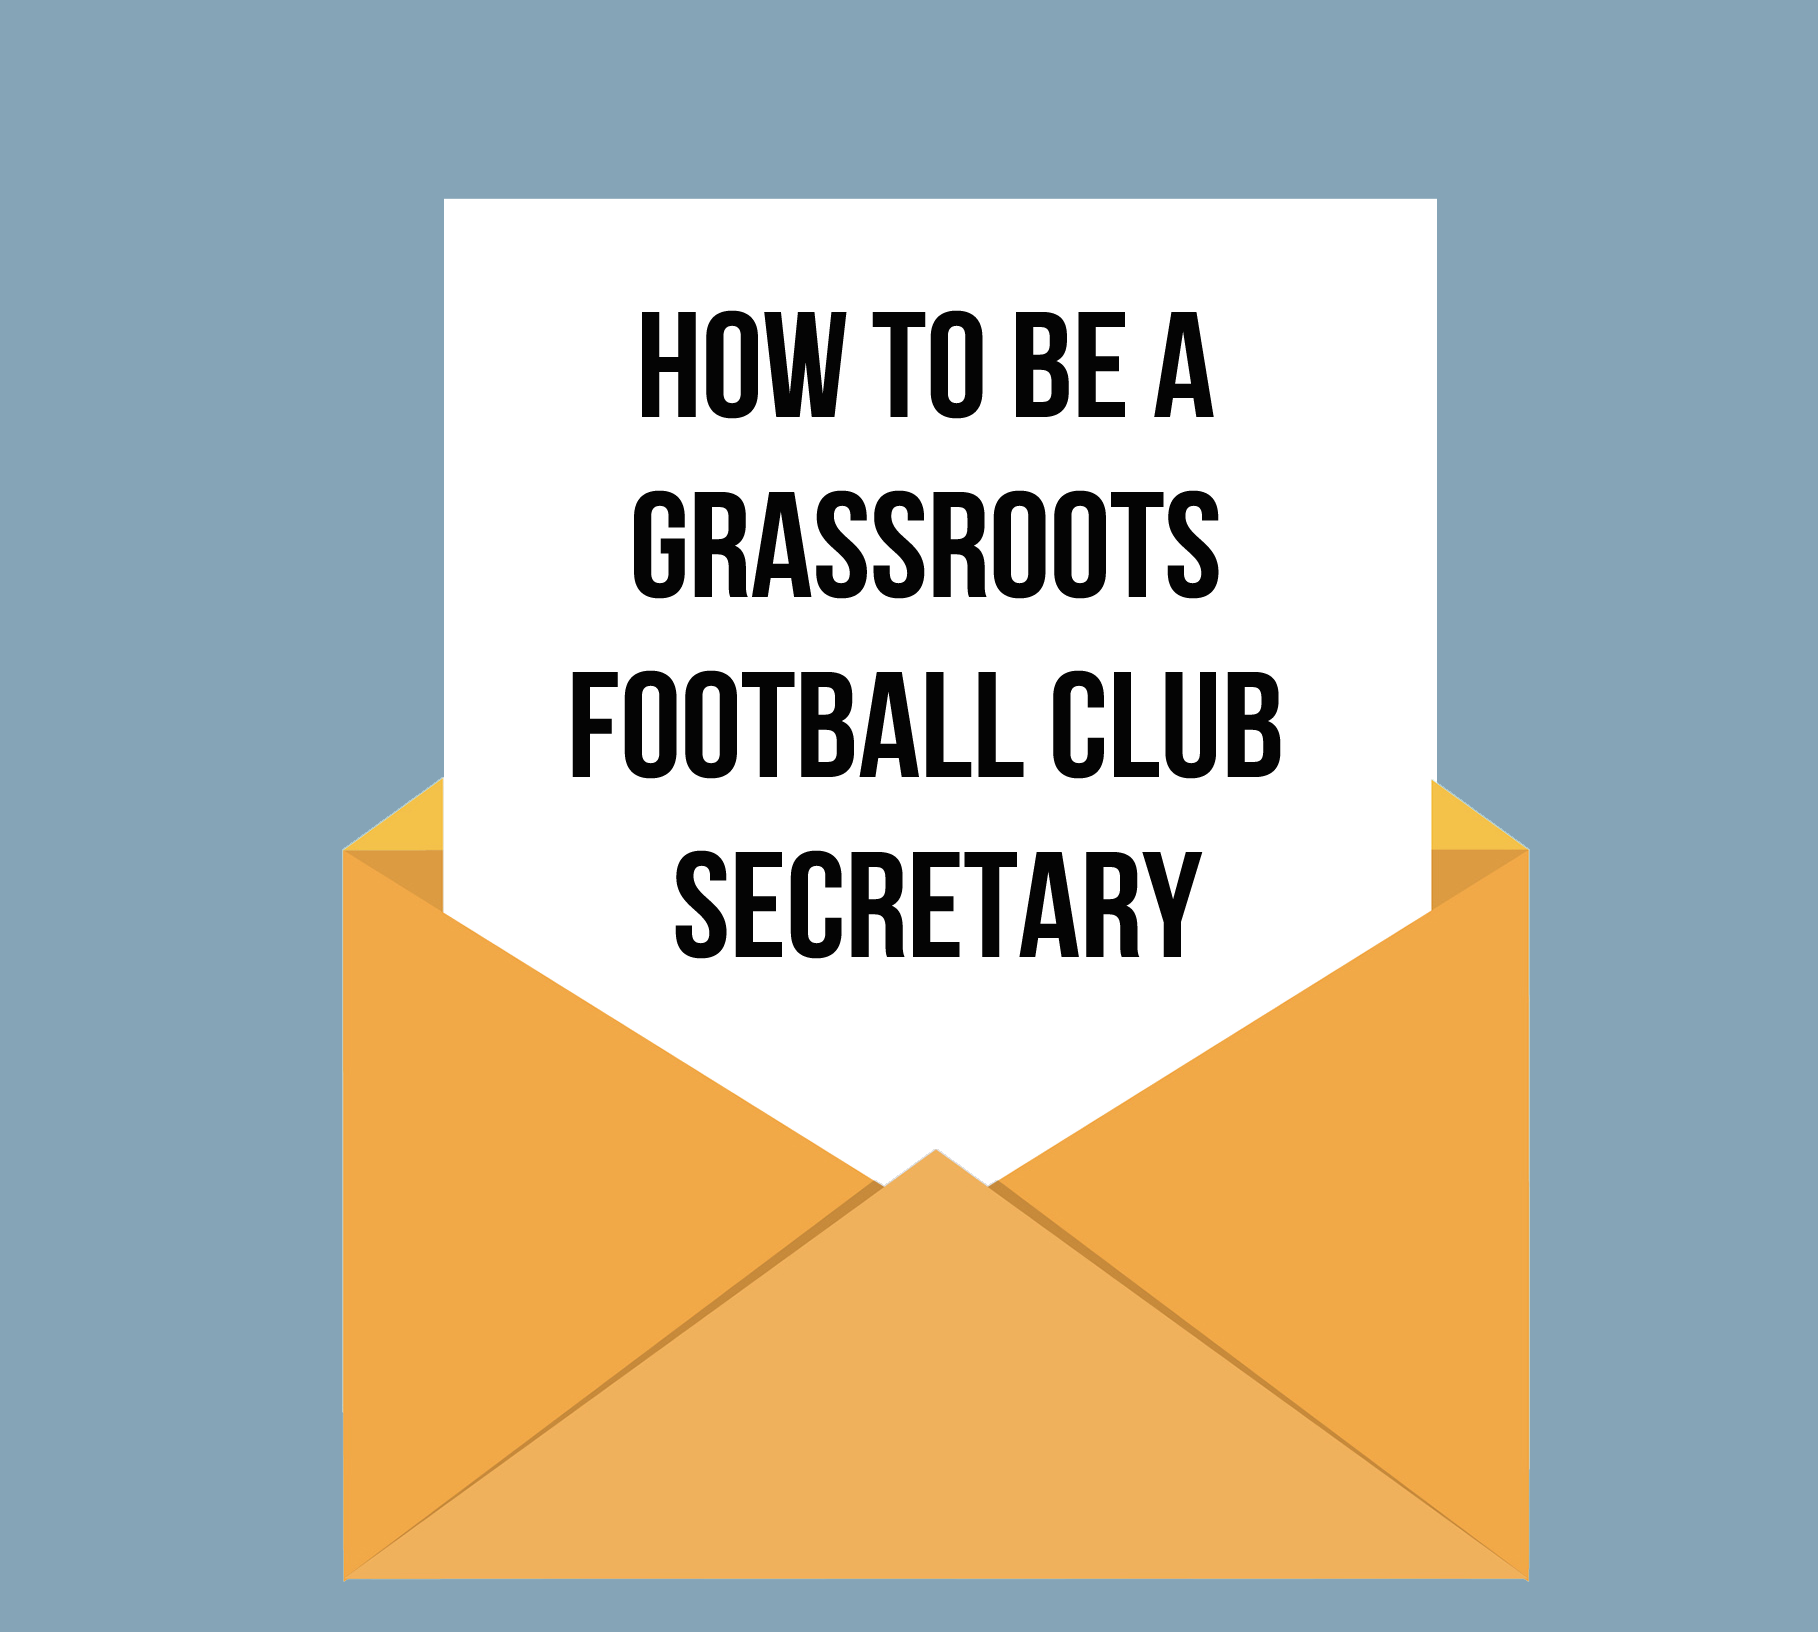 Grassroots Football club secretary